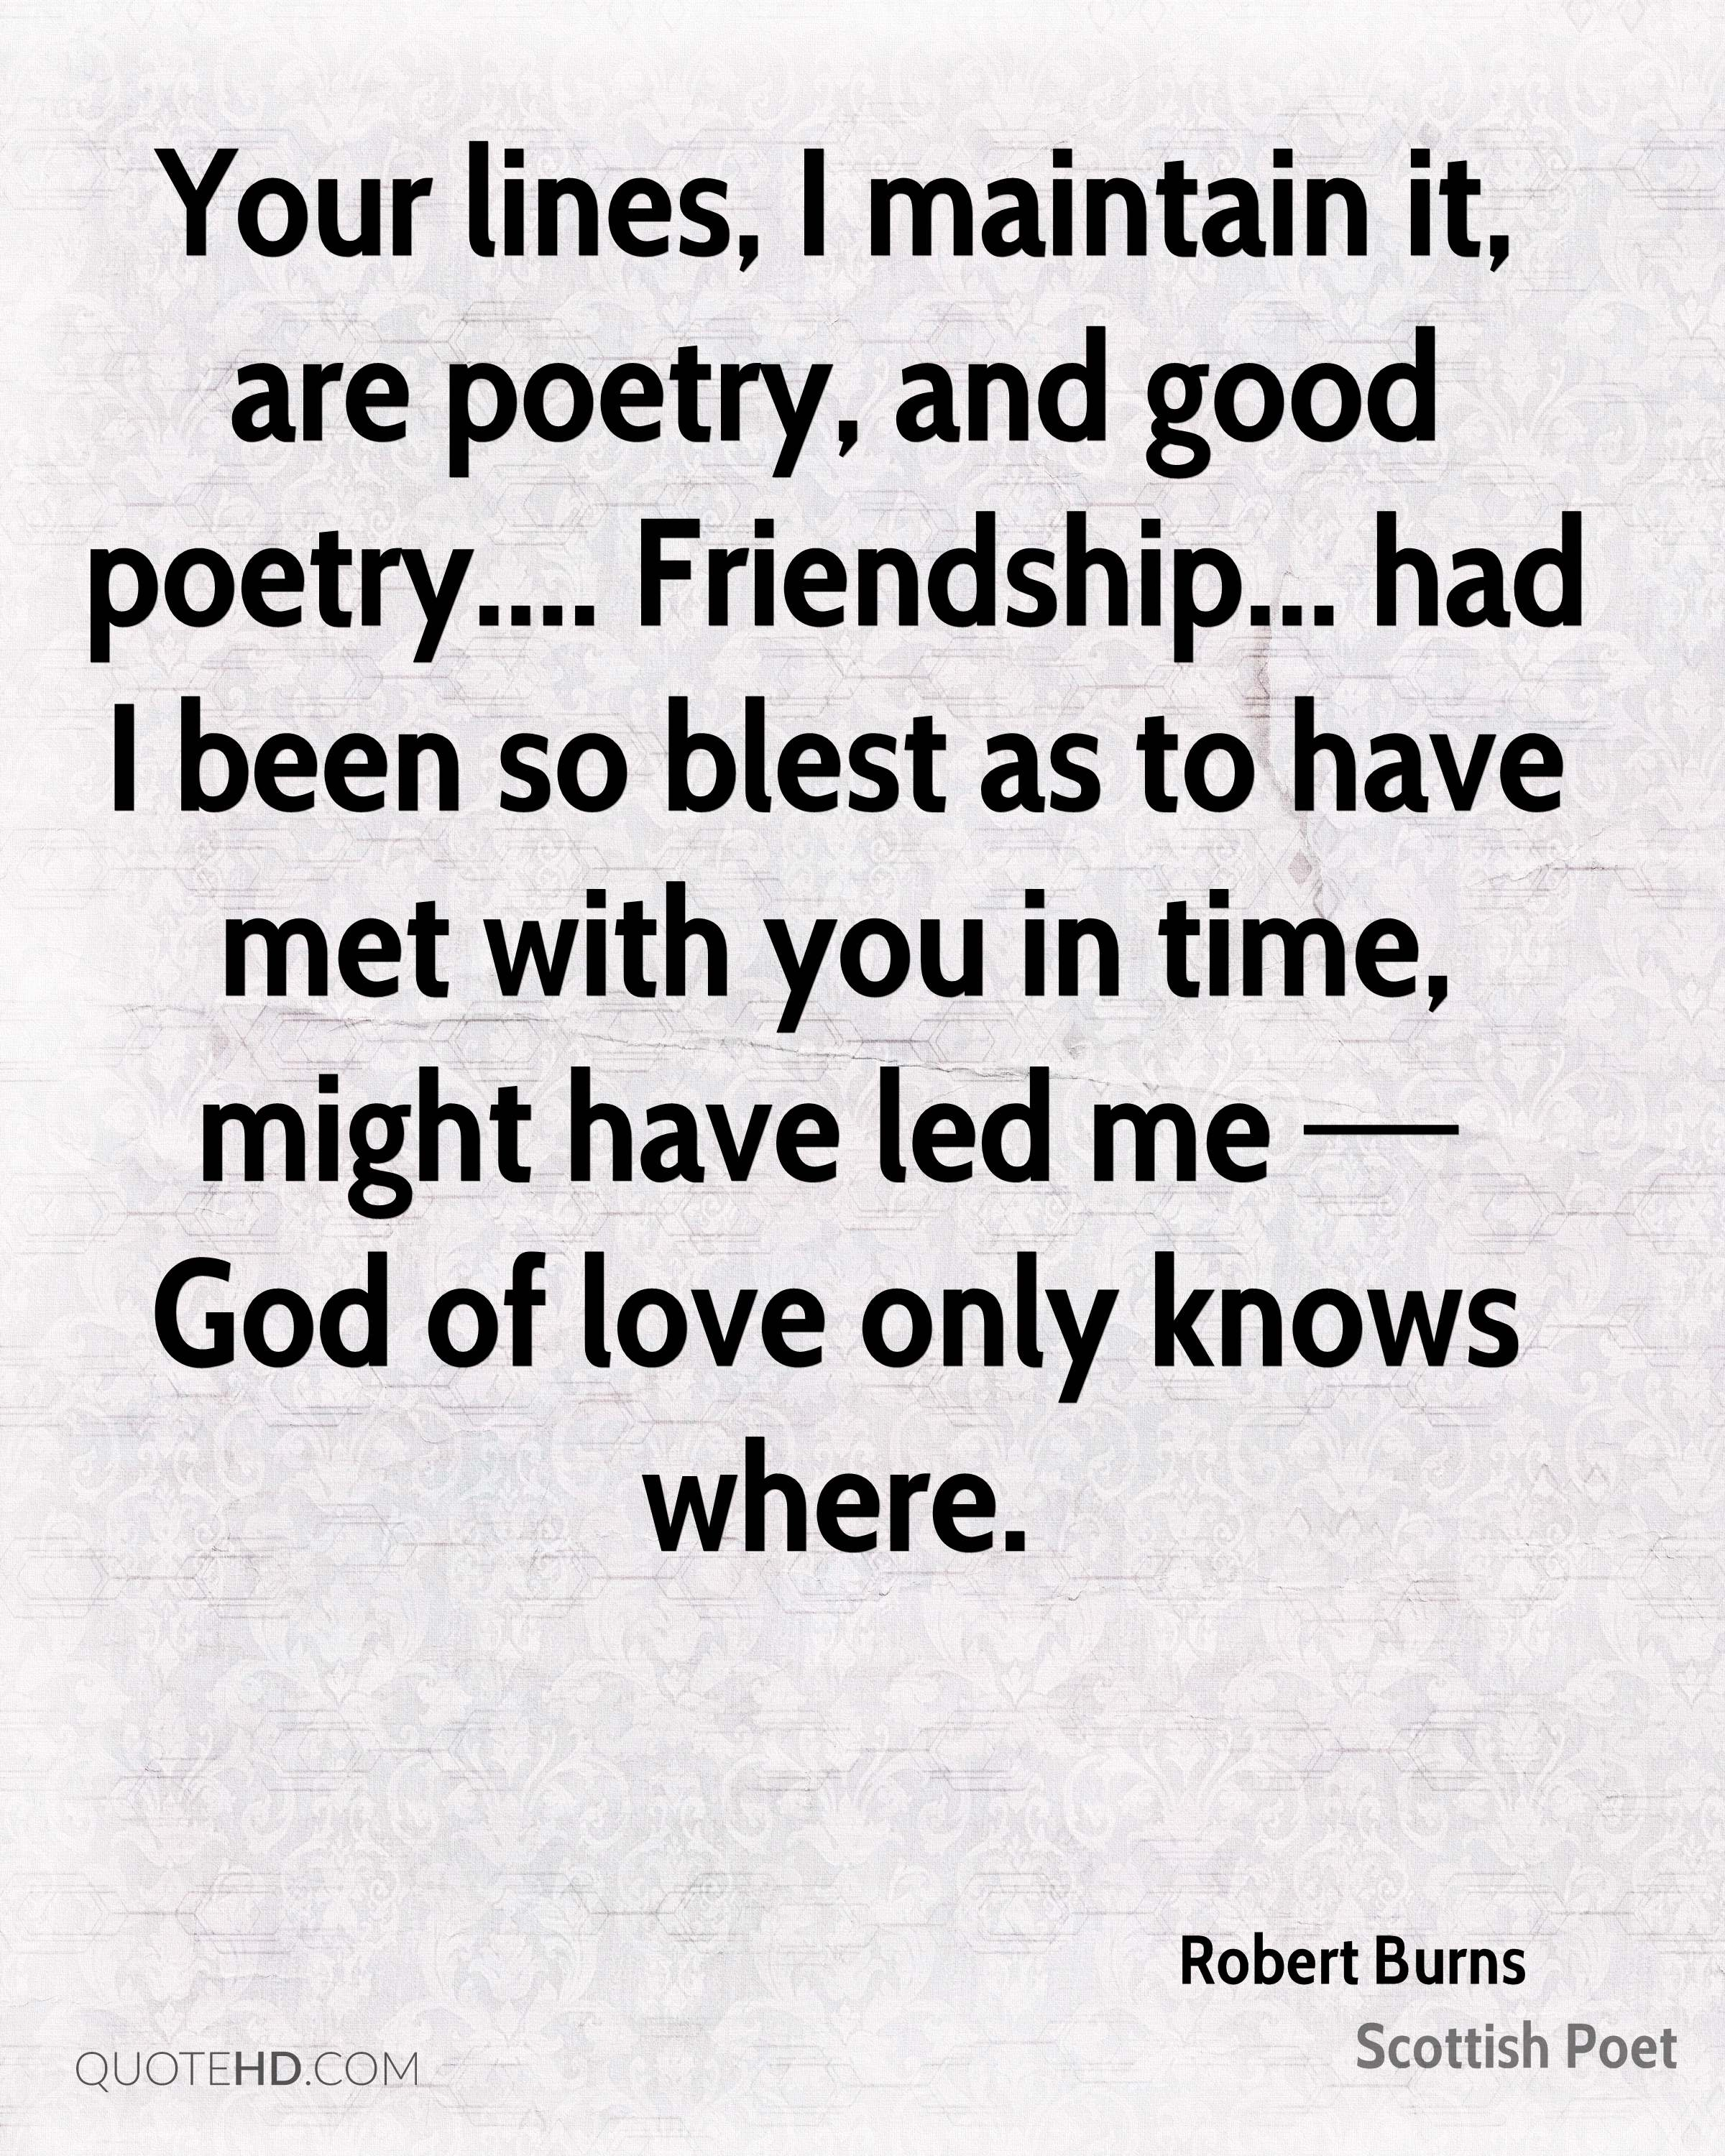 Good Quotes About Love And Friendship Robert Burns Friendship Quotes  Quotehd